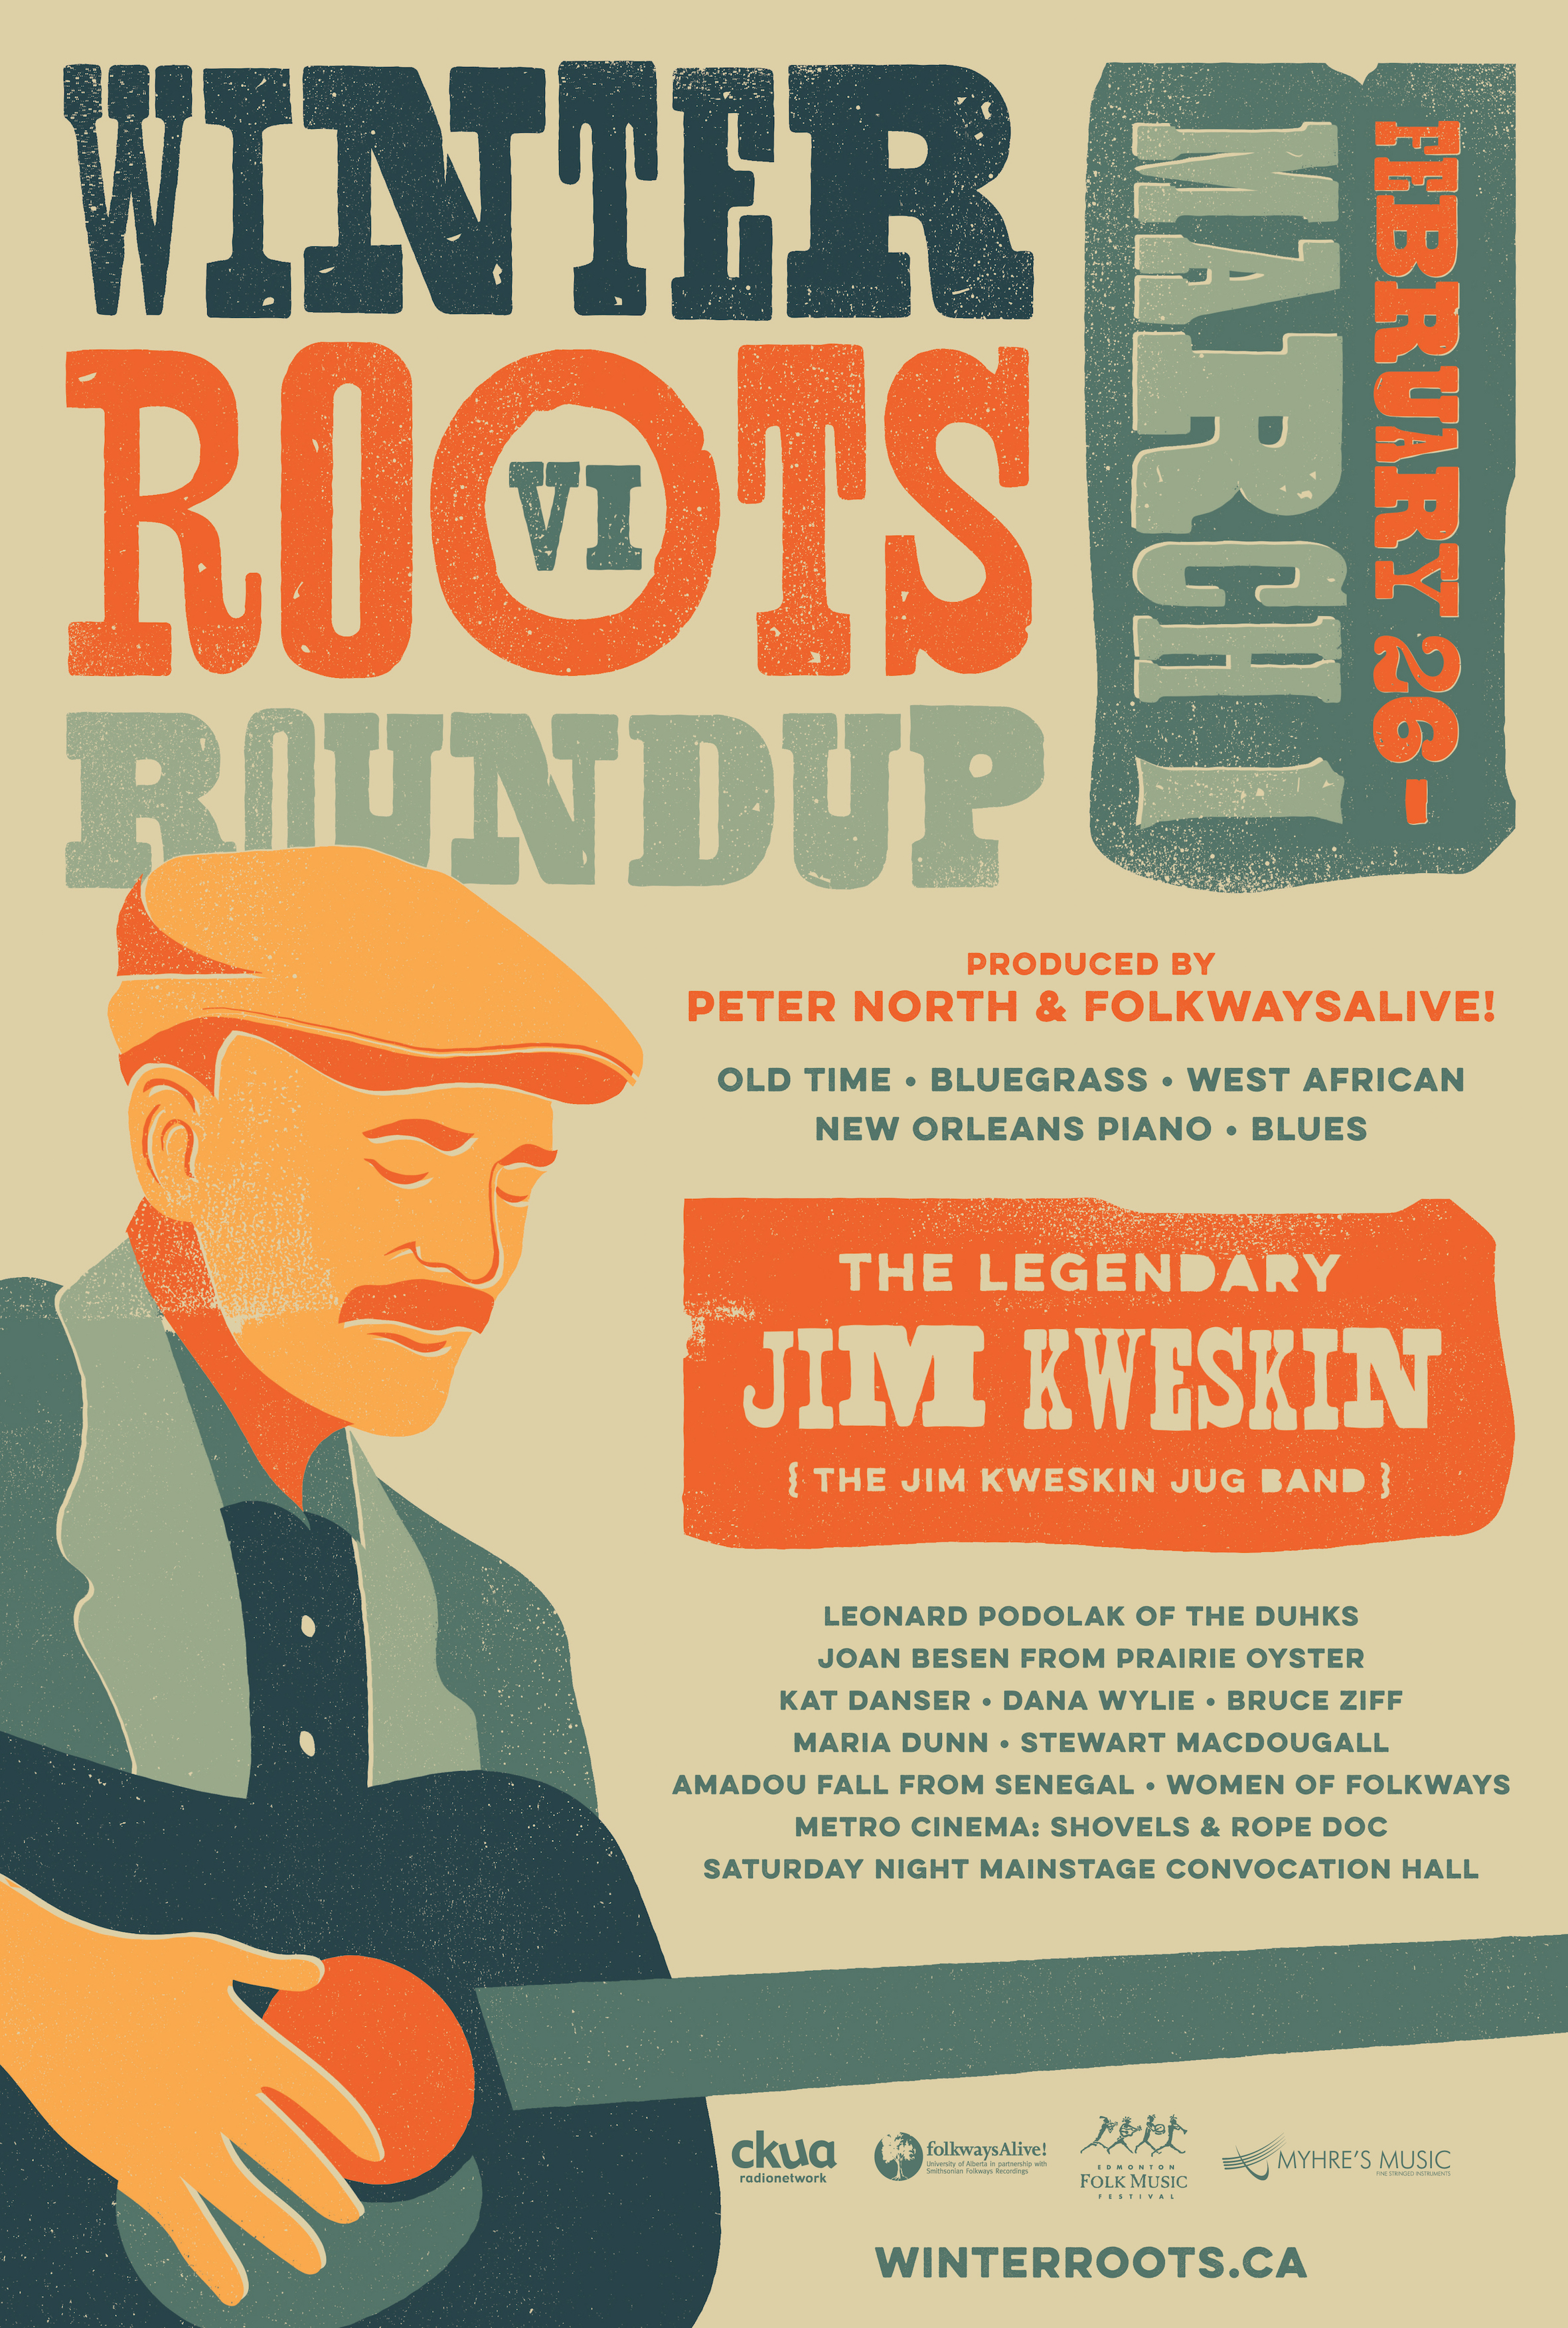 Winter-Roots-Roundup-Poster-v2